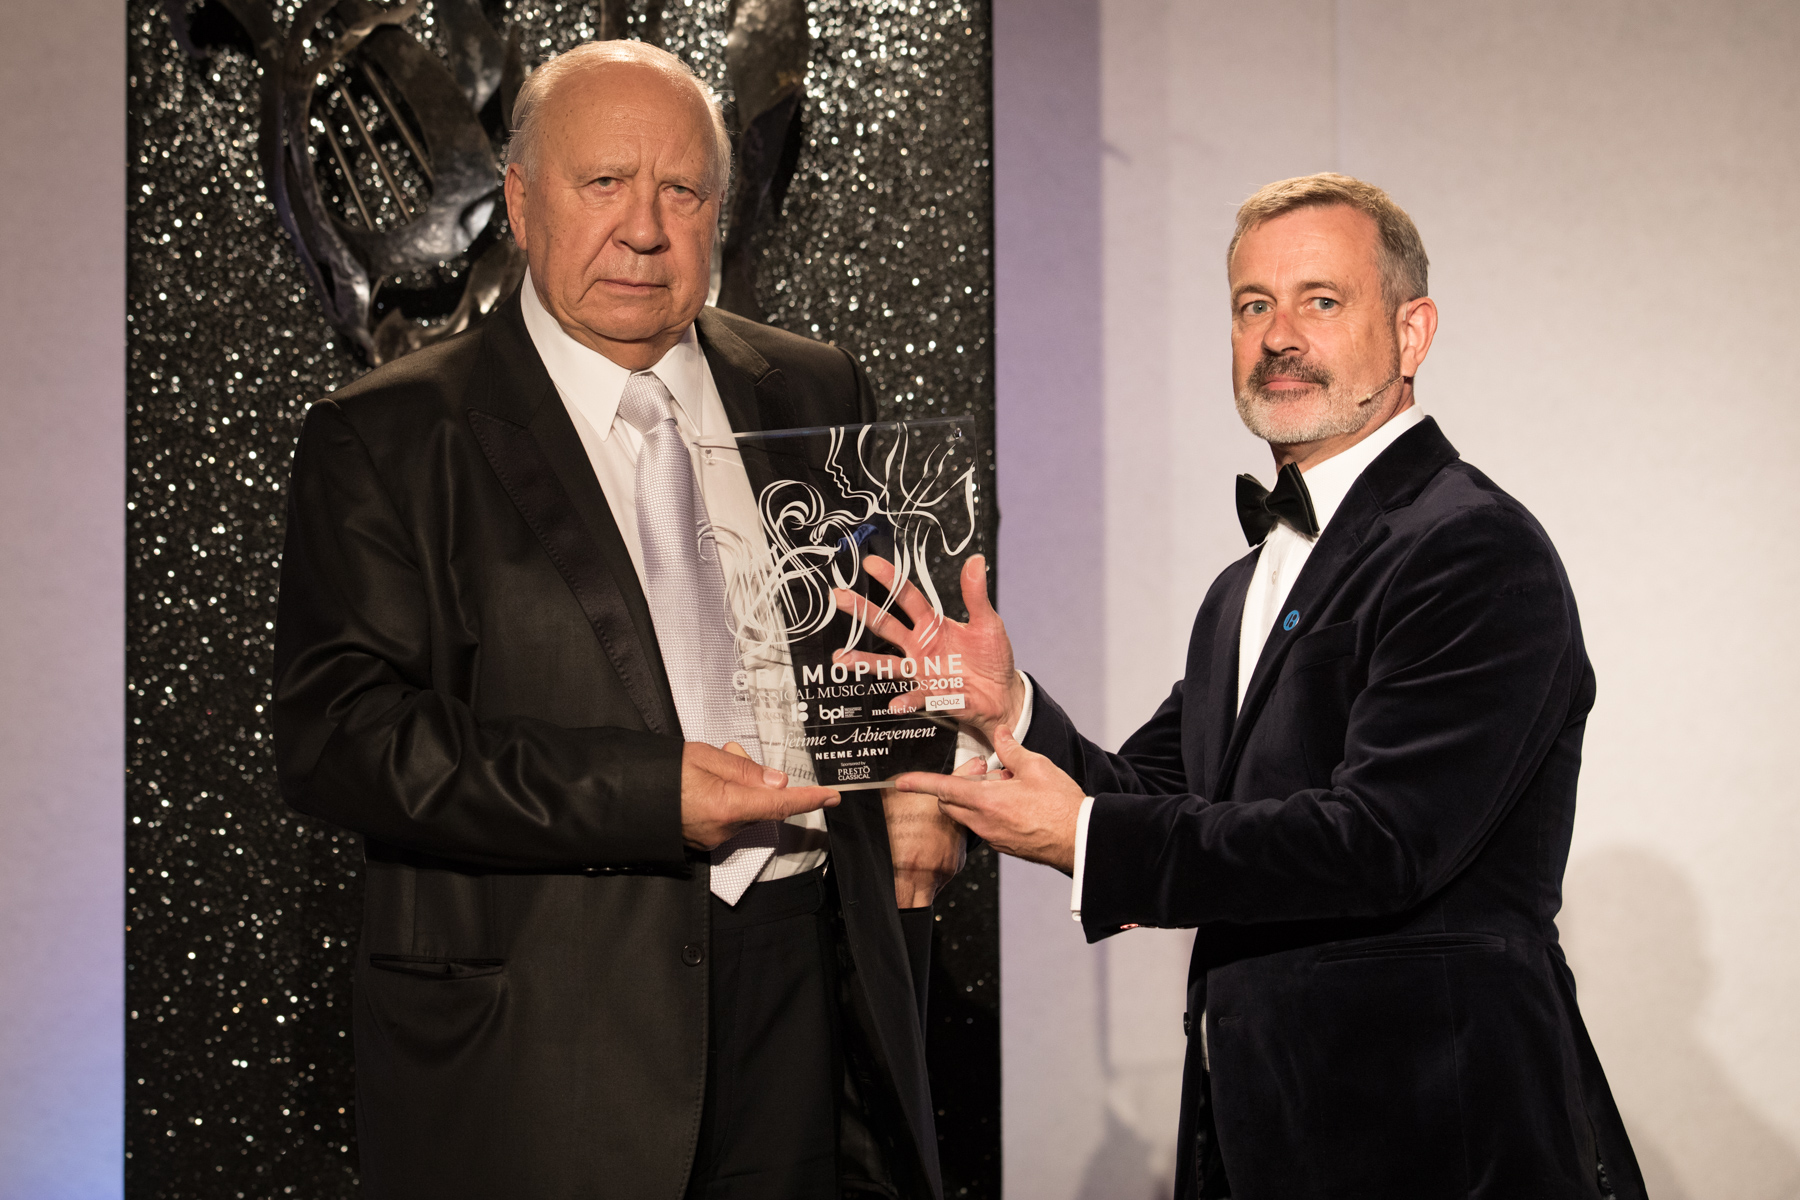 Neeme Järvi is presented with the Lifetime Achievement Award by James Jolly